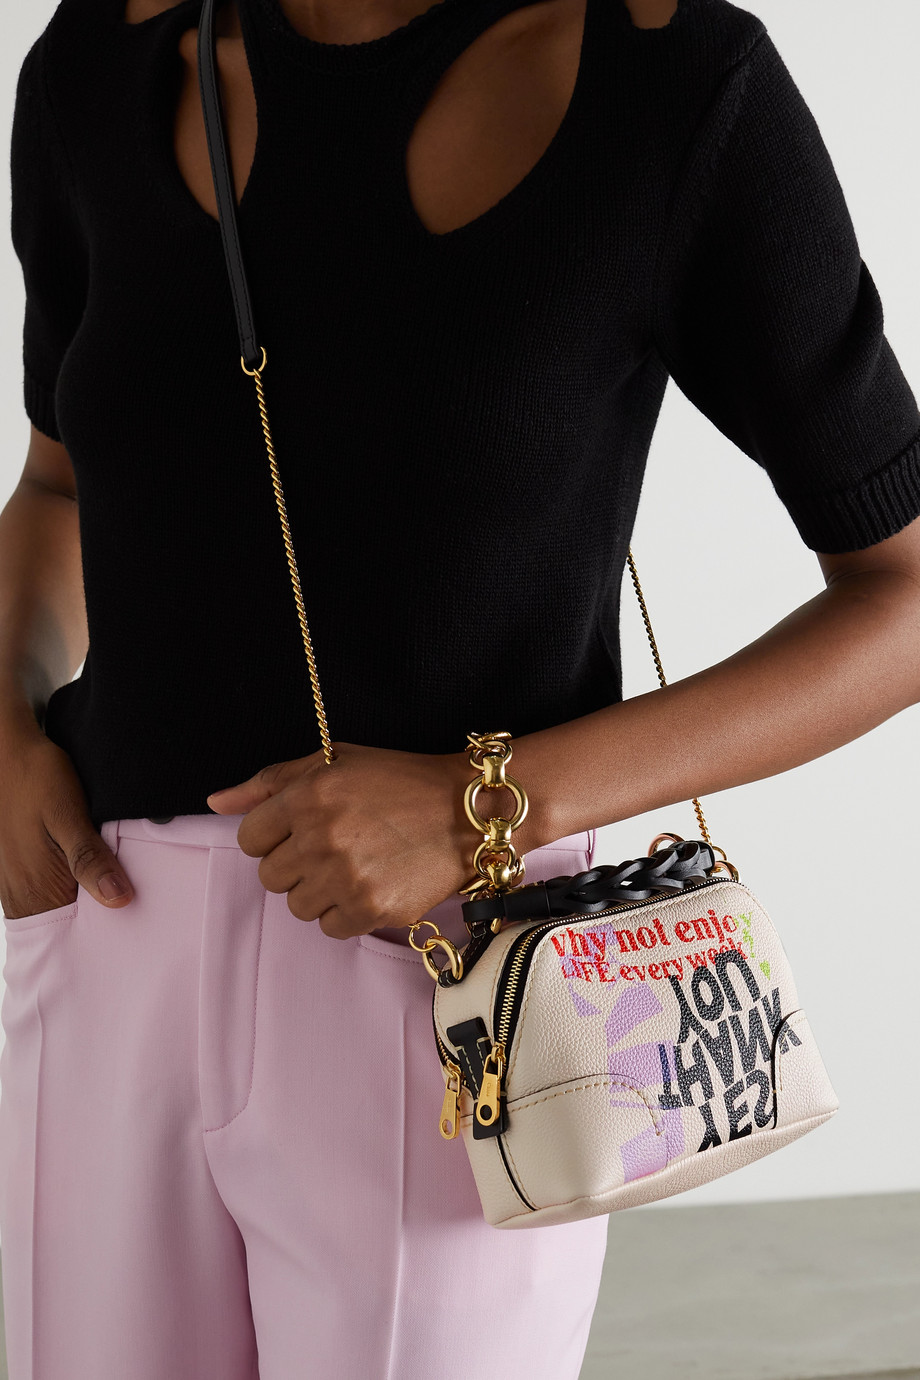 Chloé + Corita Kent Daria mini printed textured and smooth leather shoulder bag